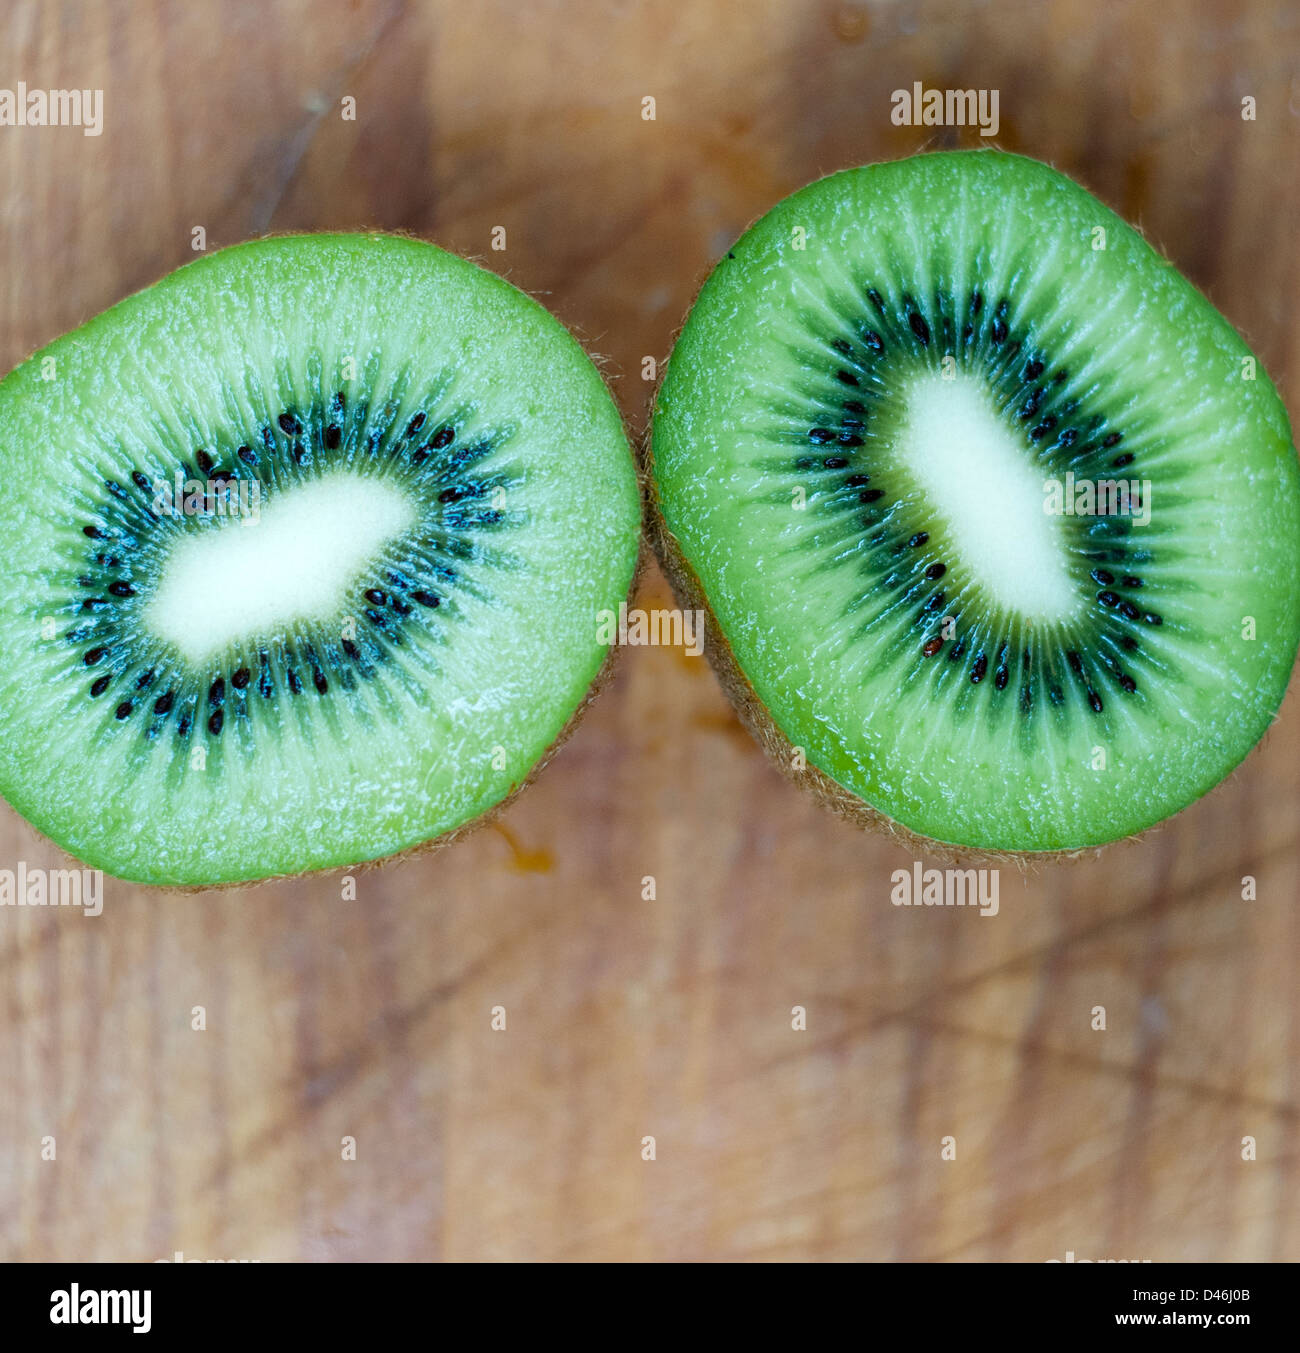 Kiwis sliced in half on old wooden scratched surface - Stock Image